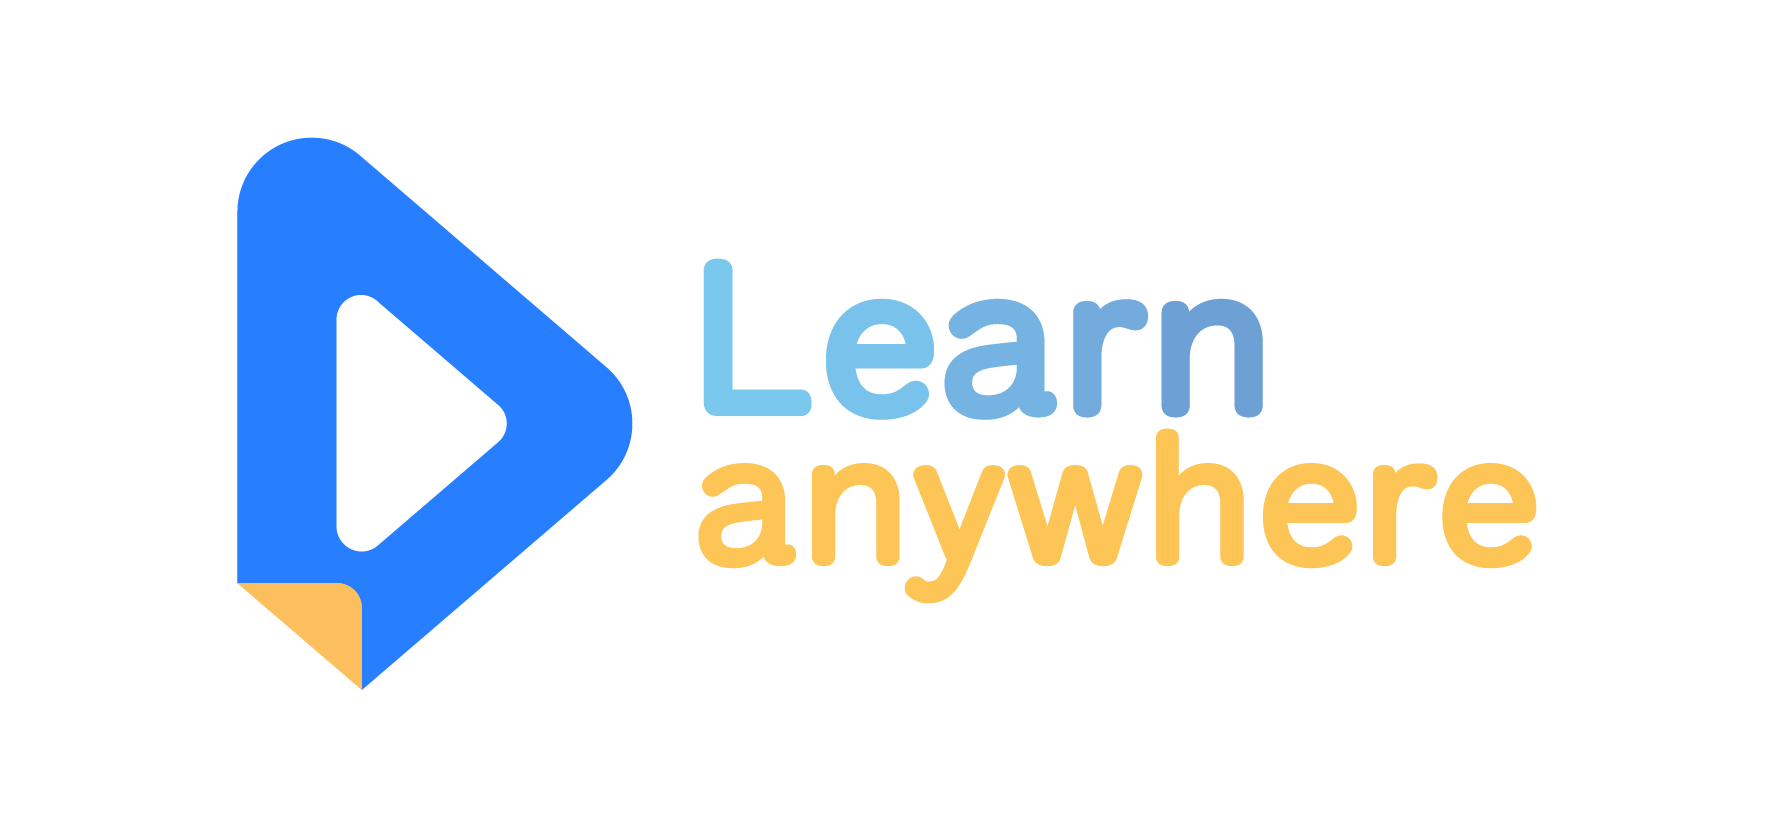 Learncorp_Logo_Pack_2021_Learn Anywhere Primary RGB